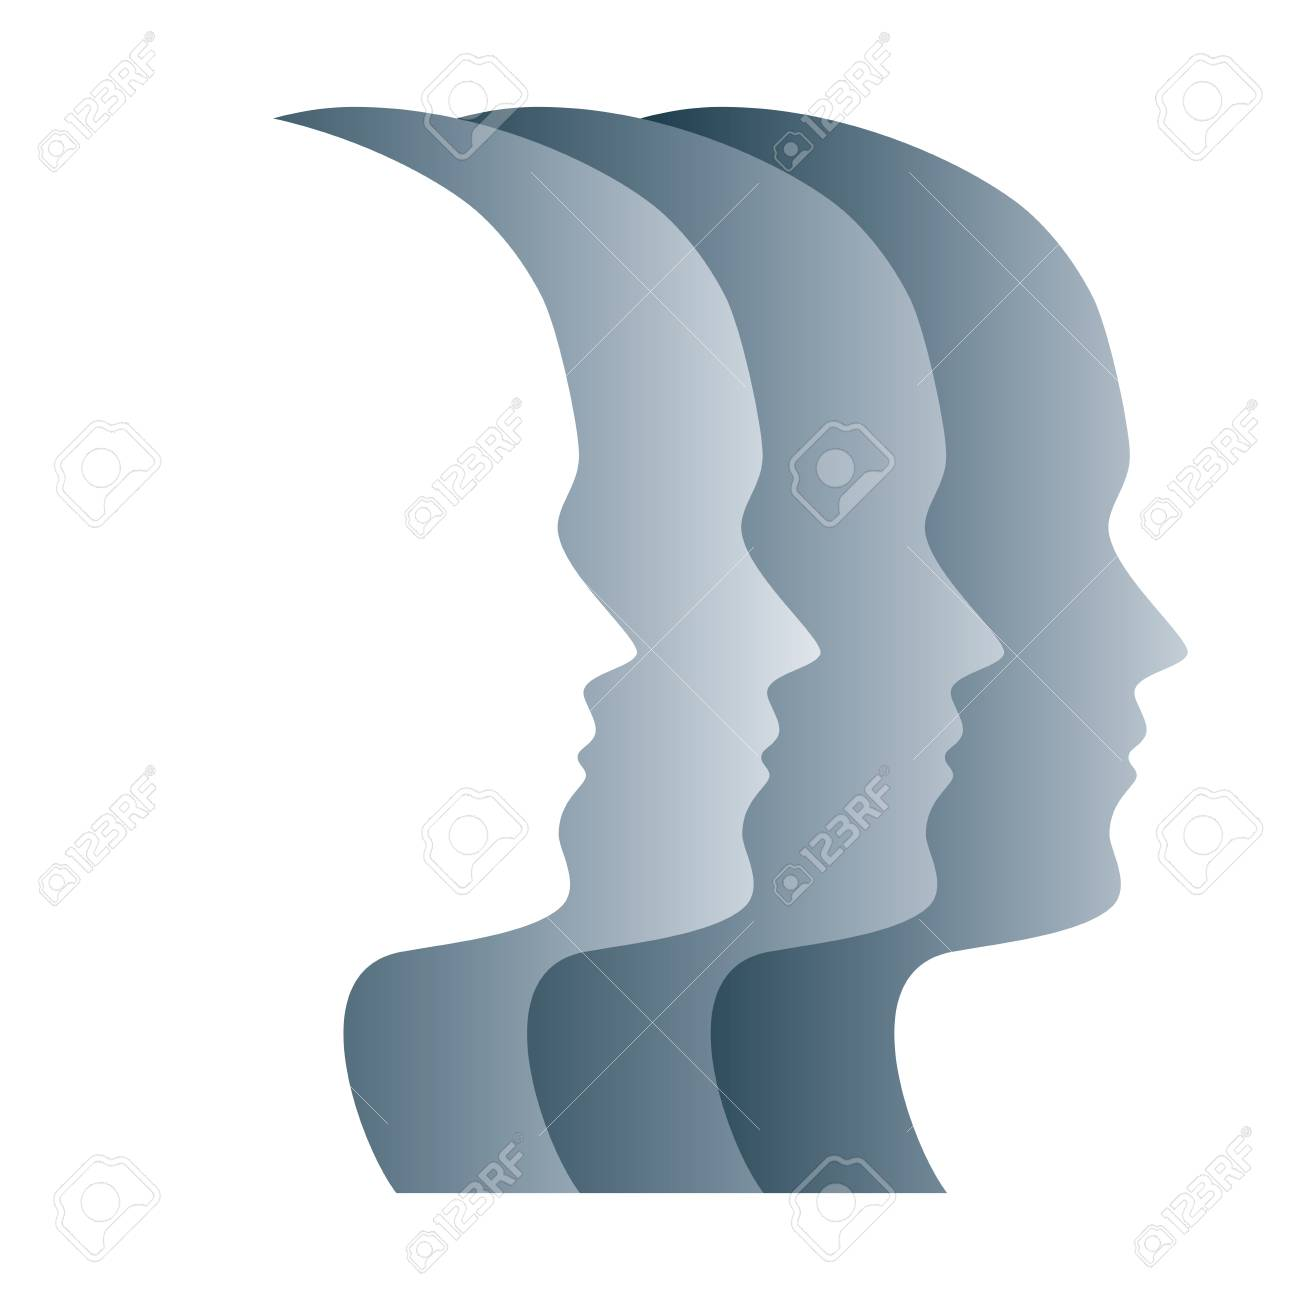 Gray silhouettes of faces, positioned in a straight row. Four overlapping heads, as a symbol for egality, marching in step, military, obedience and loss of identity. Psychology. Illustration. Vector. - 105481046